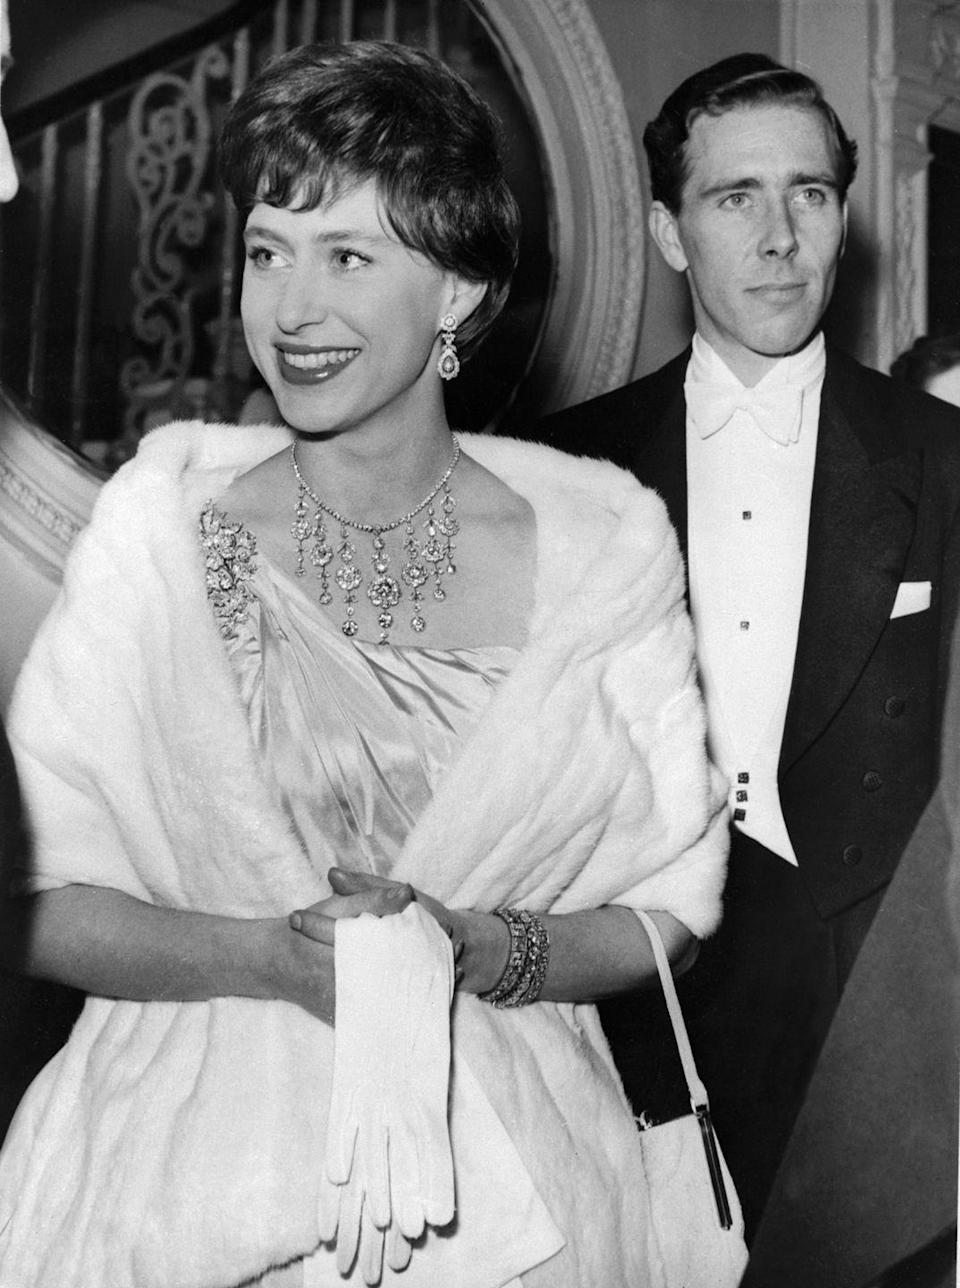 """<p>There hadn't been a divorced member of the royal family <a href=""""https://www.townandcountrymag.com/society/news/a9255/princess-margaret-lord-snowdon-relationship/"""" rel=""""nofollow noopener"""" target=""""_blank"""" data-ylk=""""slk:since King Henry VIII"""" class=""""link rapid-noclick-resp"""">since King Henry VIII</a> in the 1500s, until Princess Margaret and Lord Snowdon <a href=""""https://inews.co.uk/culture/television/princess-margaret-lord-snowdon-marriage-affairs-divorce-the-crown-season-3-1044197"""" rel=""""nofollow noopener"""" target=""""_blank"""" data-ylk=""""slk:announced their separation"""" class=""""link rapid-noclick-resp"""">announced their separation</a> in 1976.</p>"""